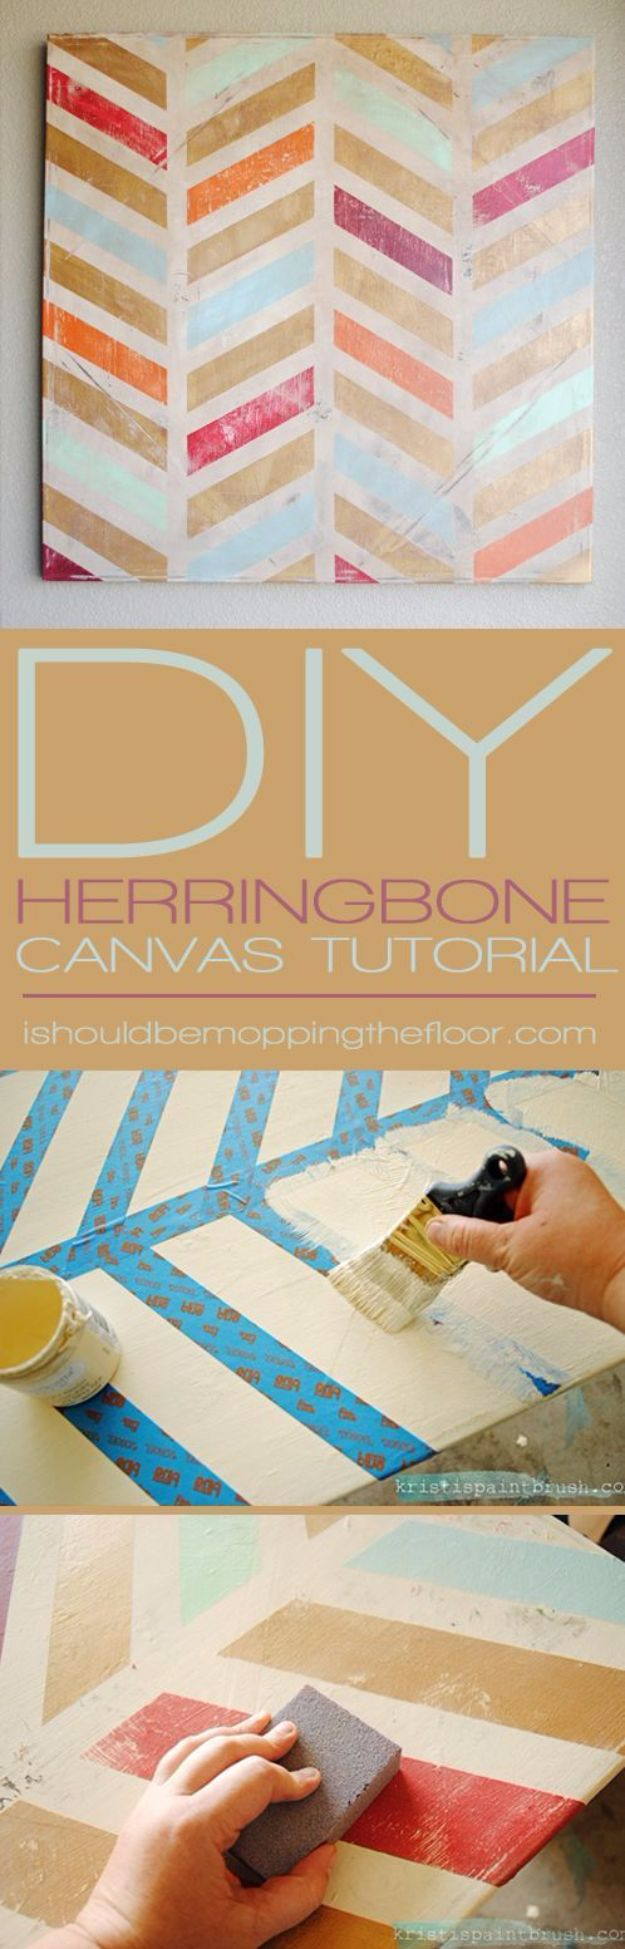 DIY Wall Art Ideas and Do It Yourself Wall Decor for Living Room, Bedroom, Bathroom, Teen Rooms | DIY Herringbone Canvas Art | Cheap Ideas for Those On A Budget. Paint Awesome Hanging Pictures With These Easy Step By Step Tutorial